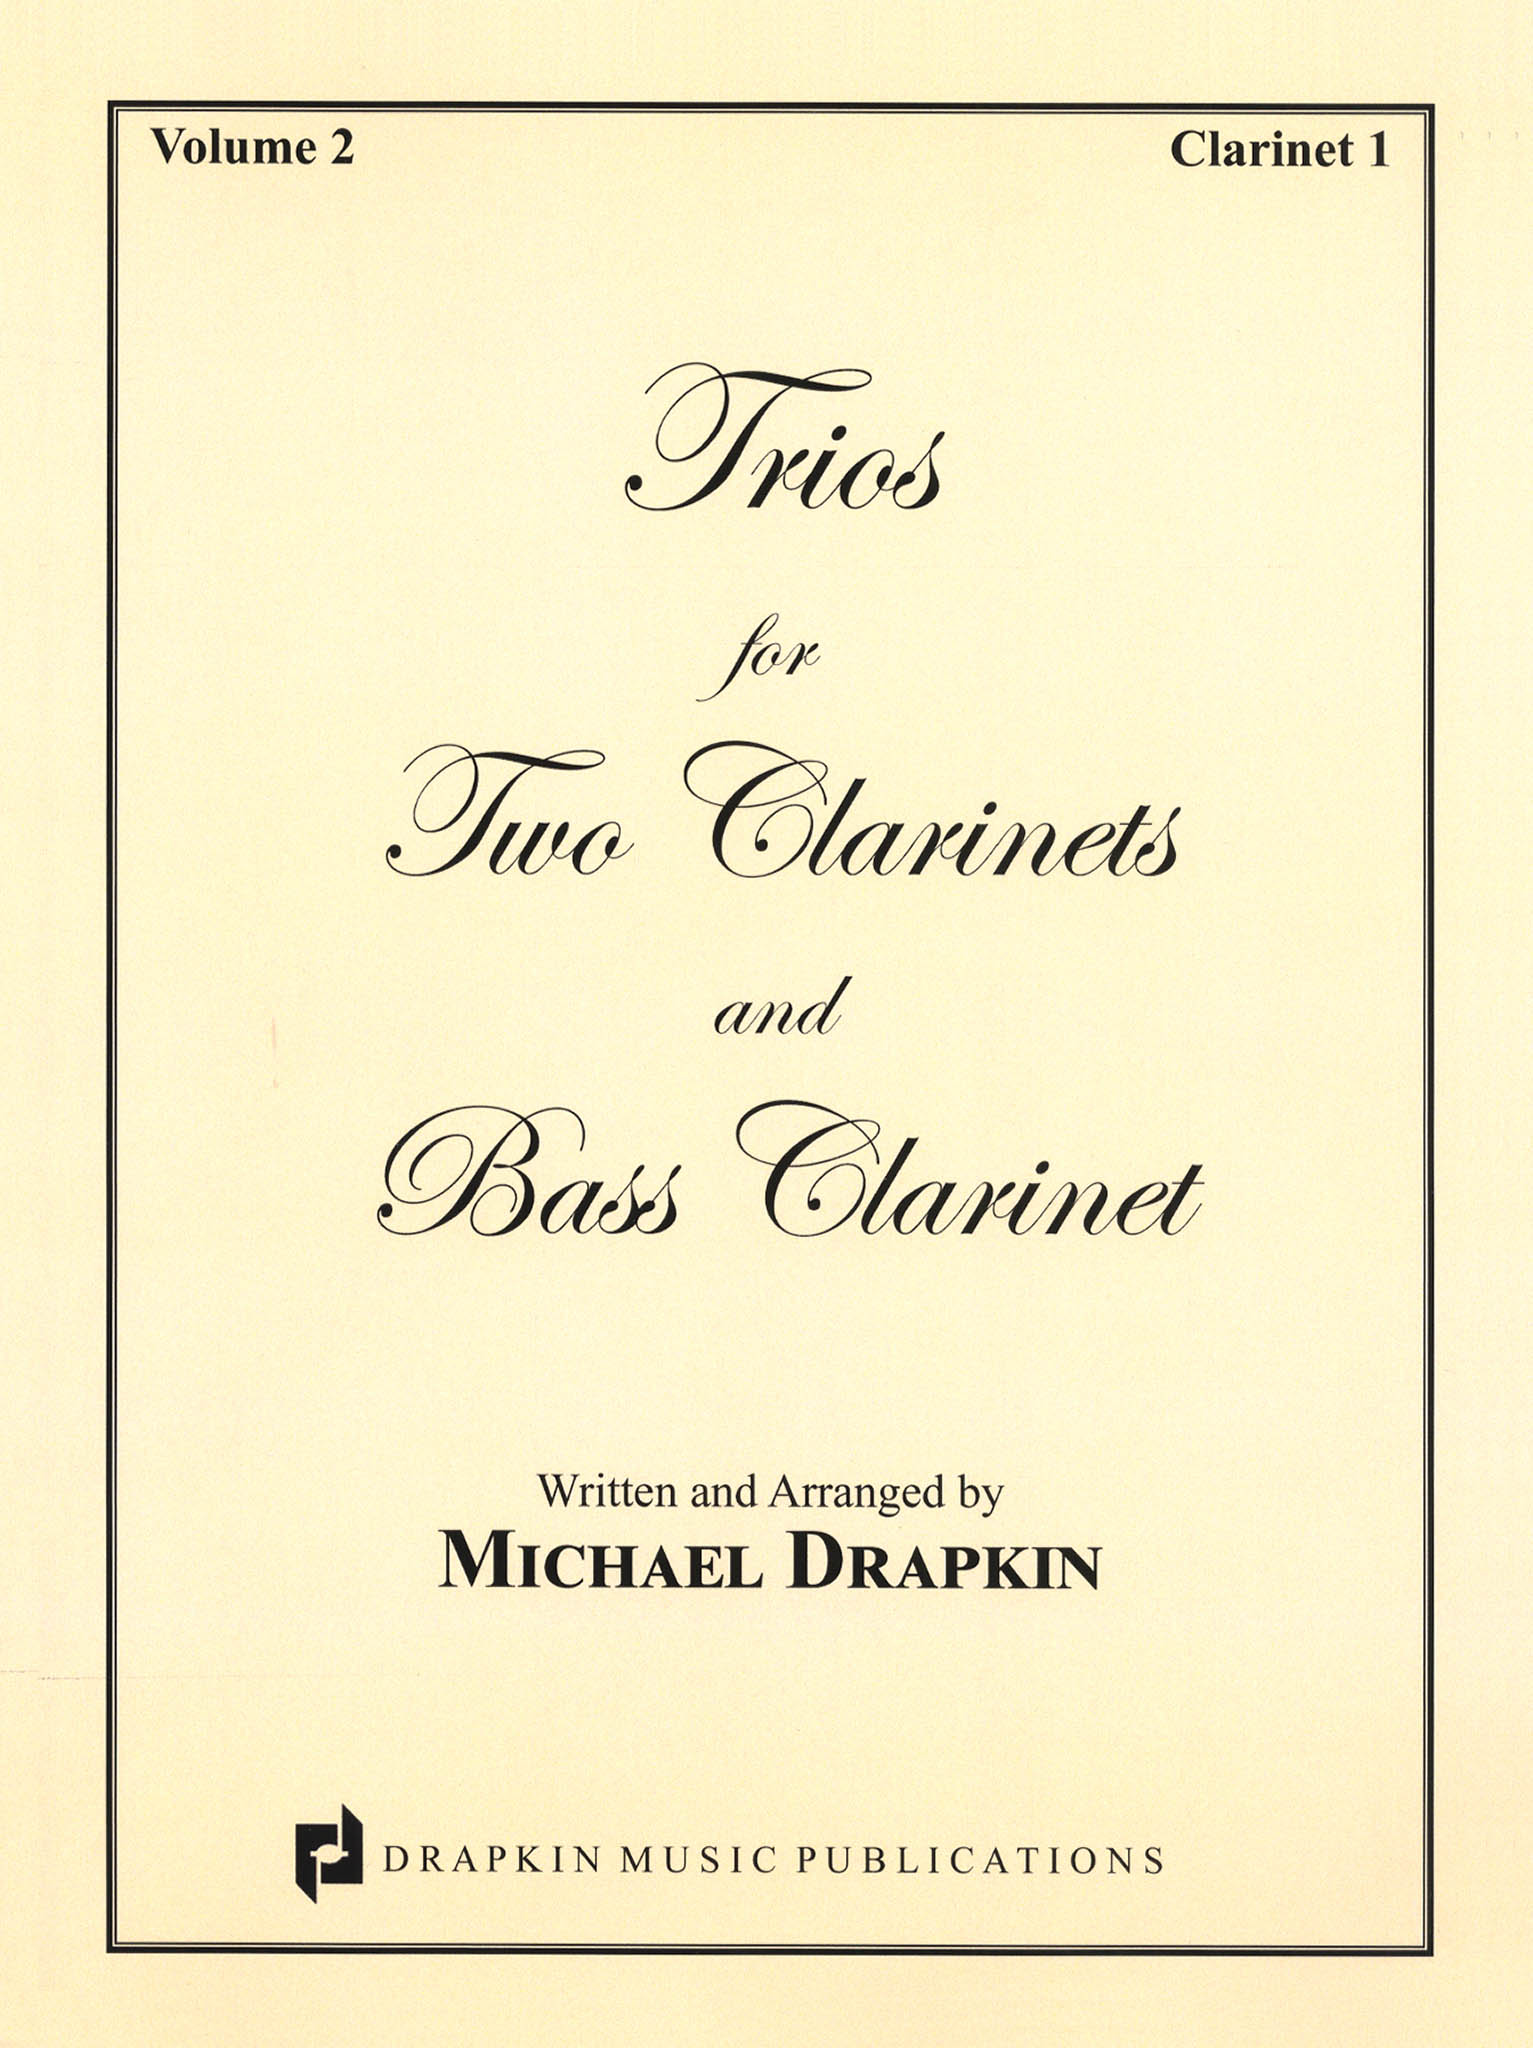 Drapkin Clarinet Trios Volume 2 (parts) Cover